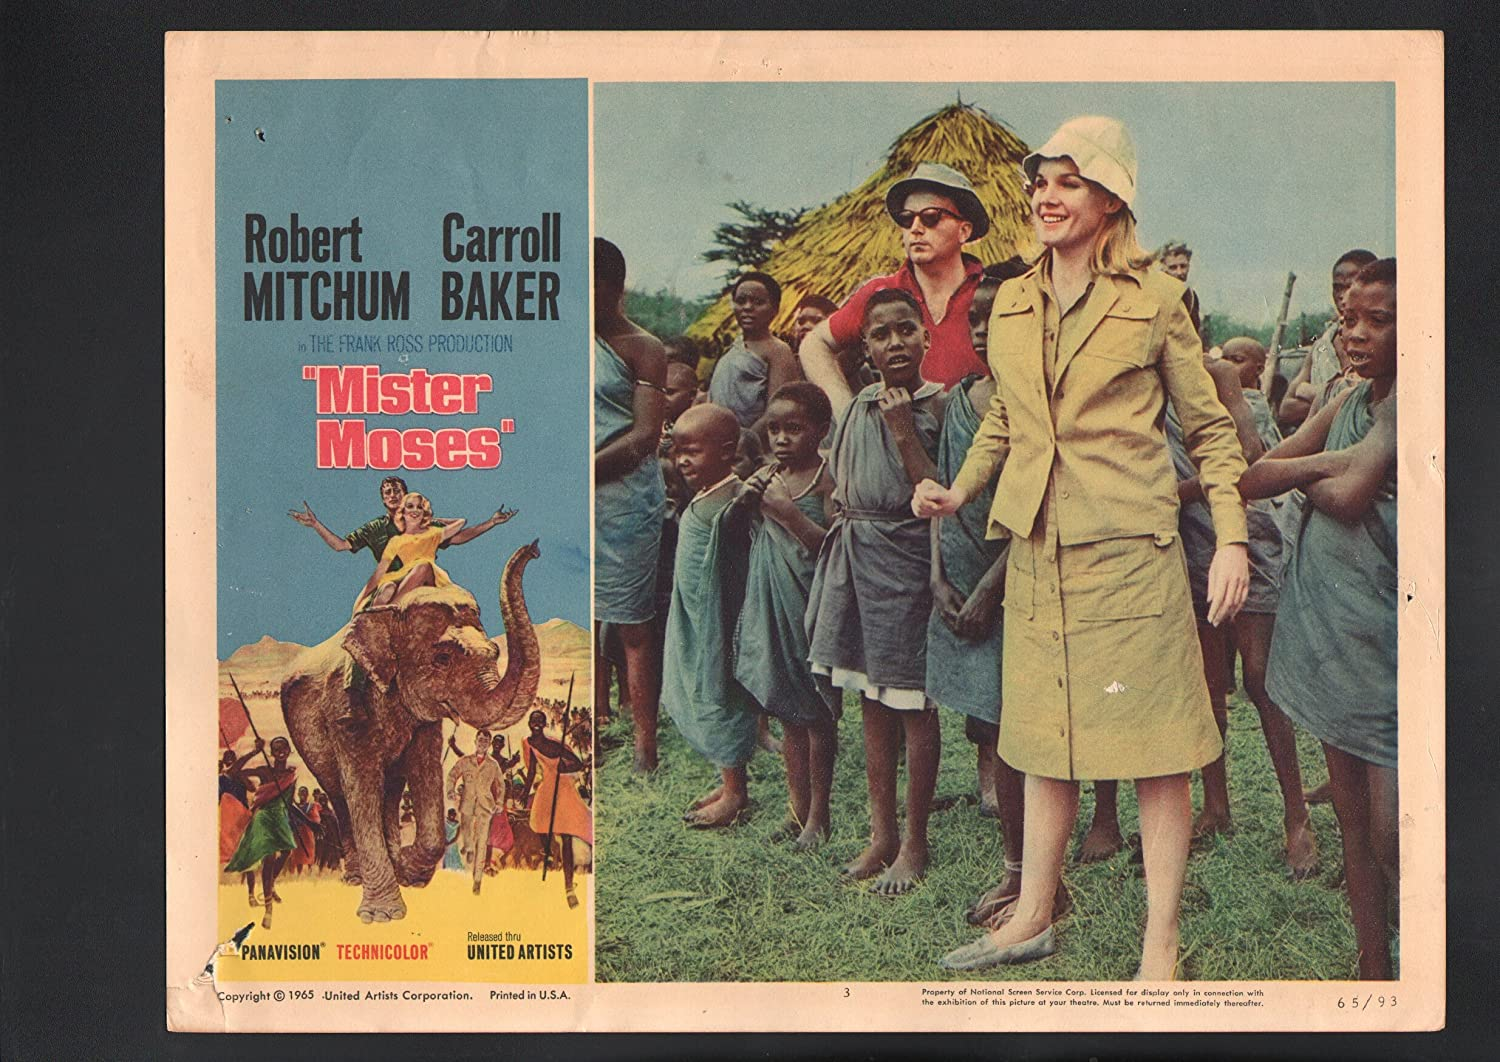 MOVIE POSTER: Mister Moses Boston Mall Max 81% OFF Baker Lobby #3-1965-Carroll Card